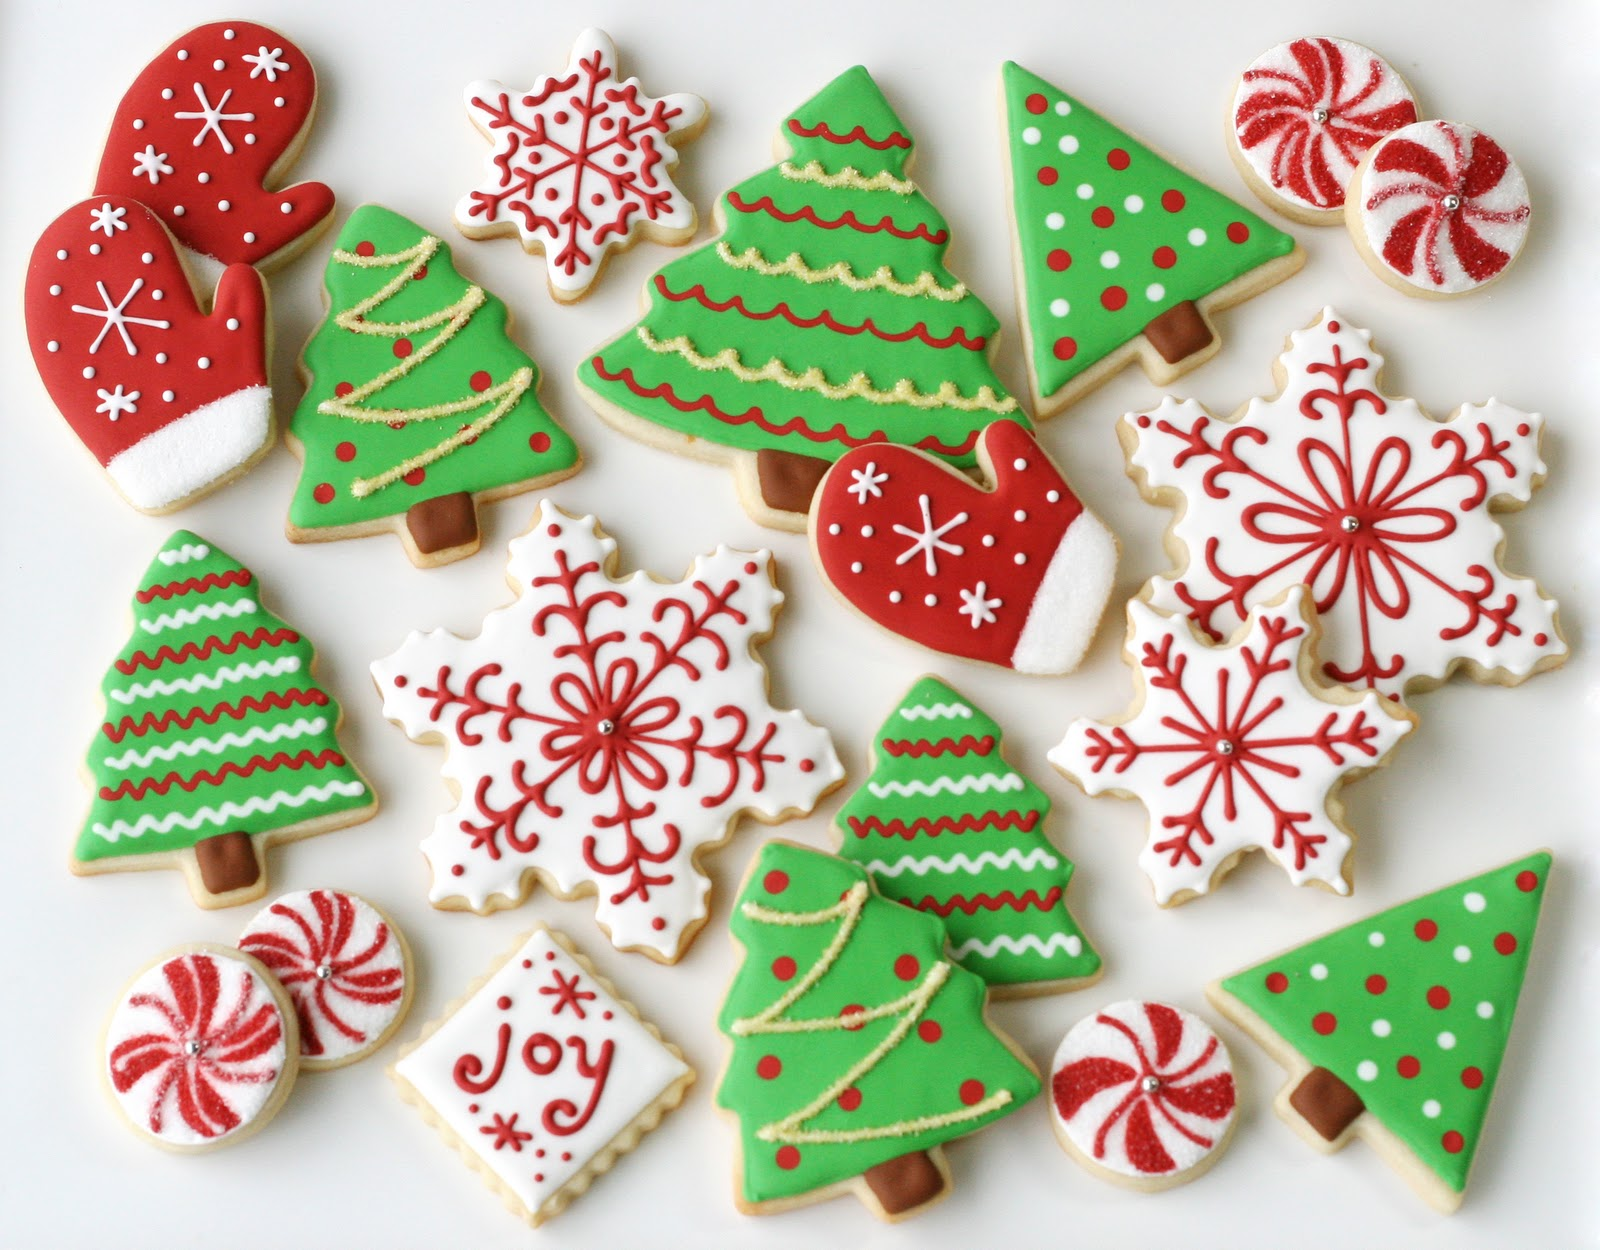 5 Quick And Easy Last Minute No Bake Christmas Cookie Recipes